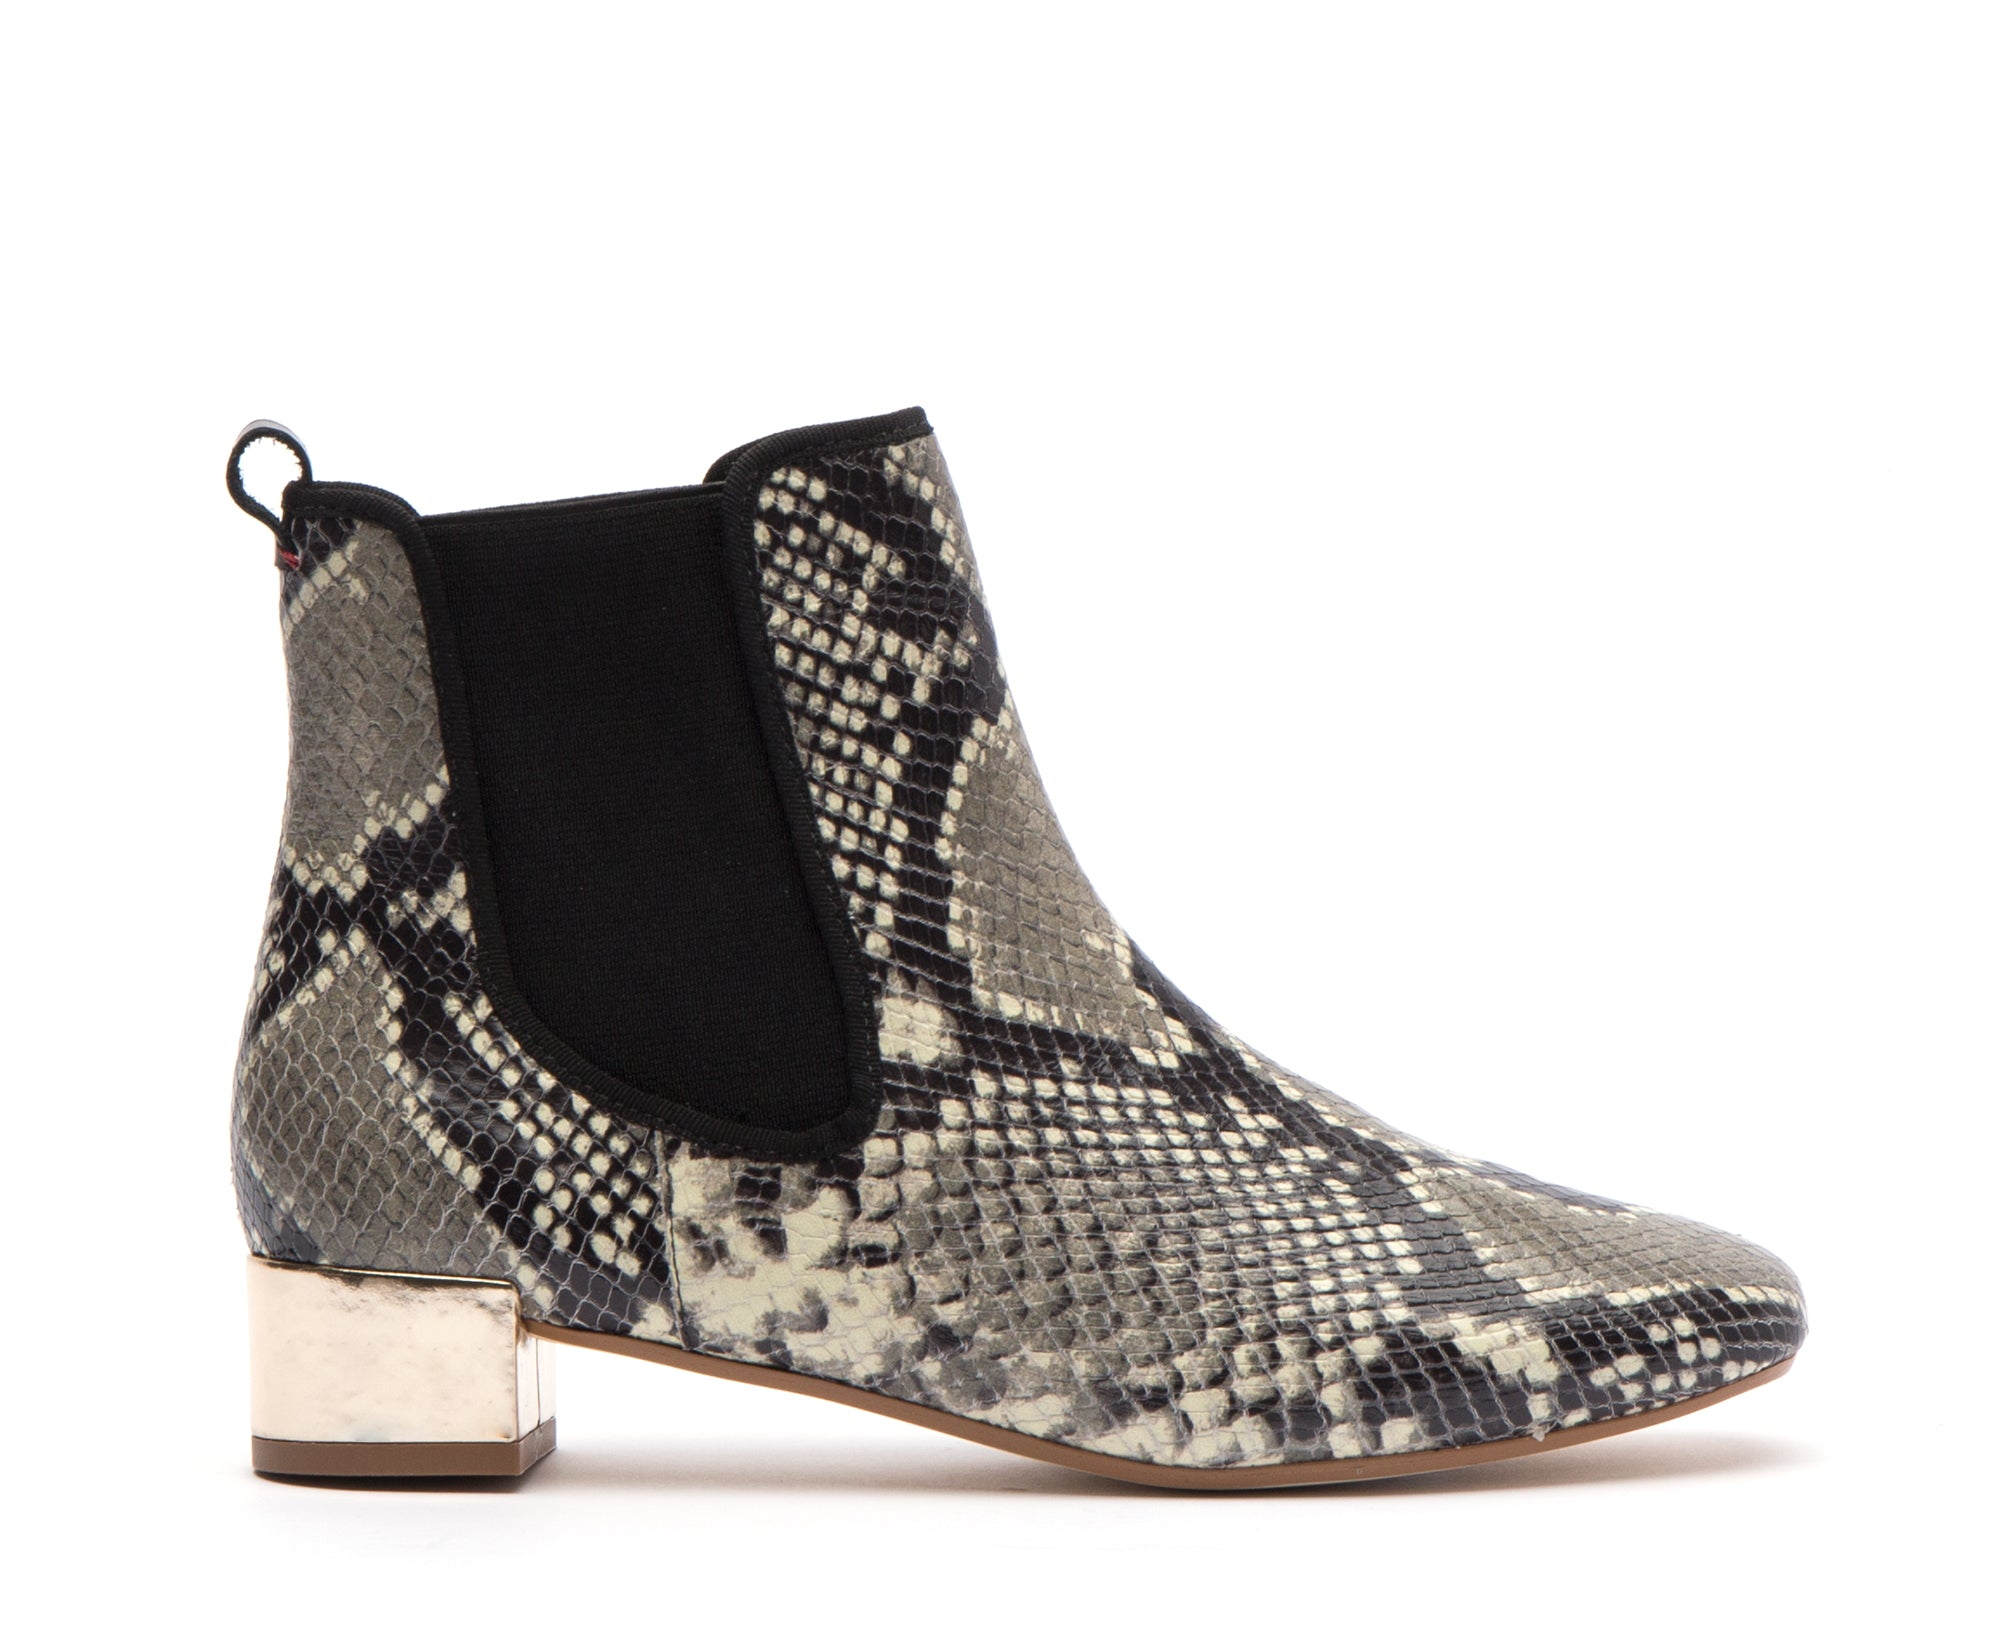 Milly Snake Leather Boots *FINAL SALE*